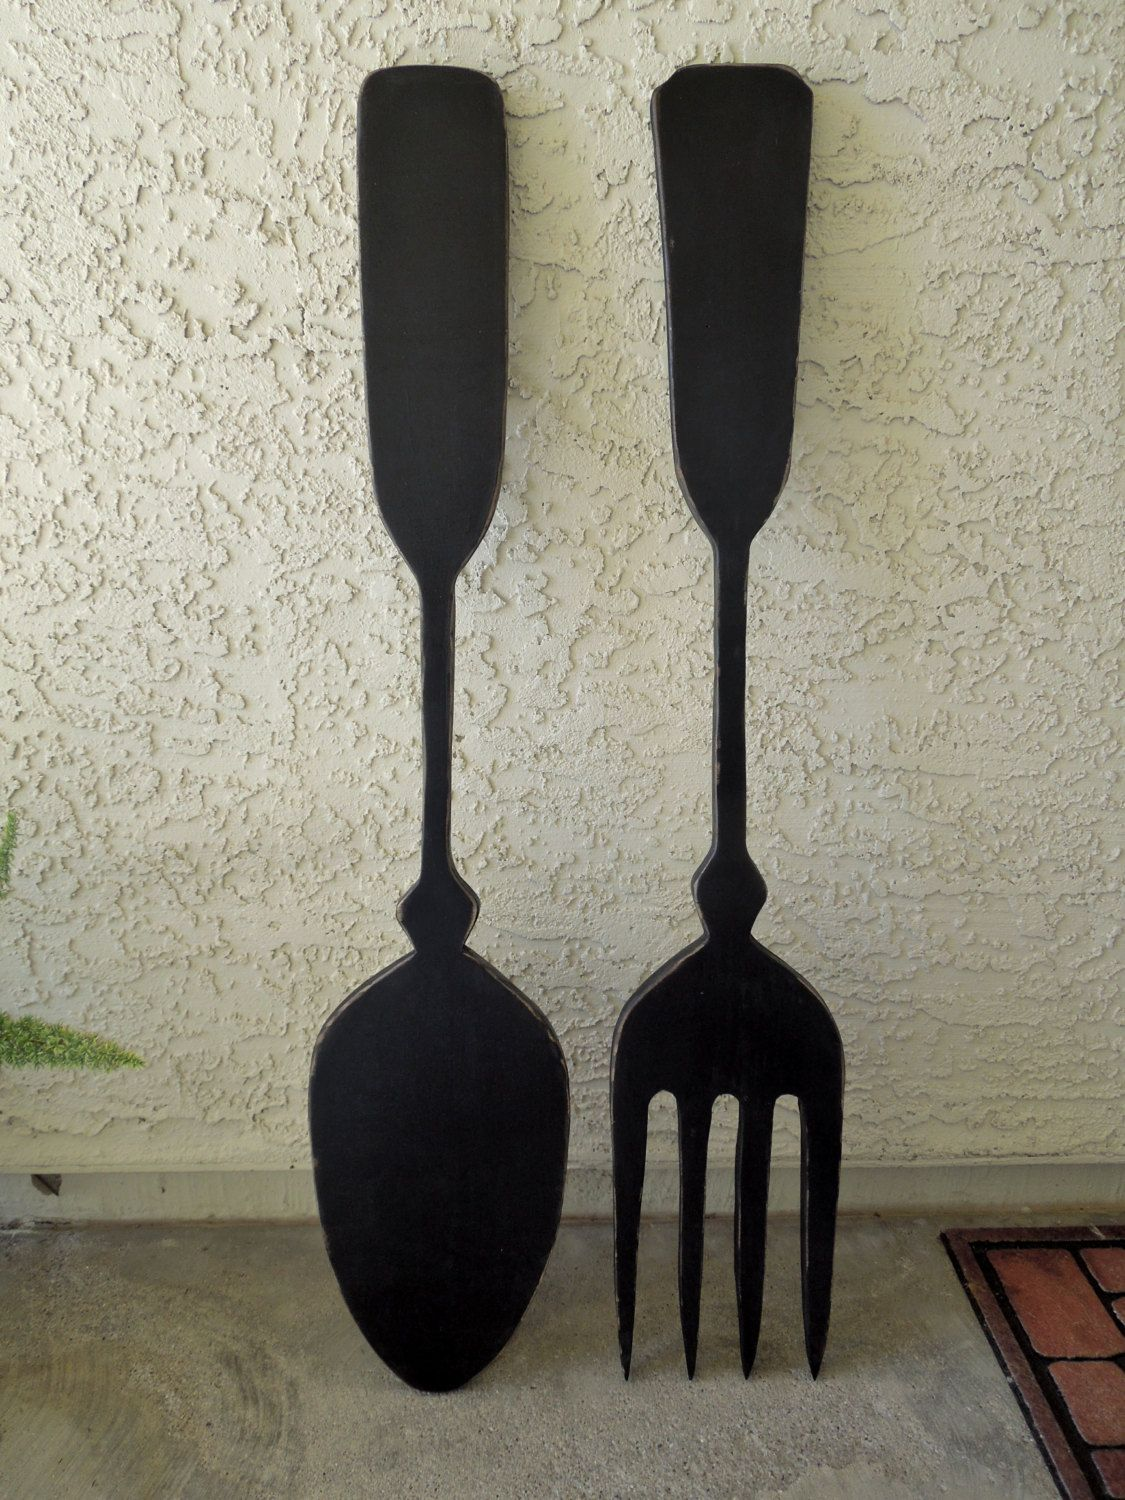 Large Fork And Spoon Wall Decor Big Wood Spoon And Fork Wall Decor For Your Kitchen By Jigsawjoe